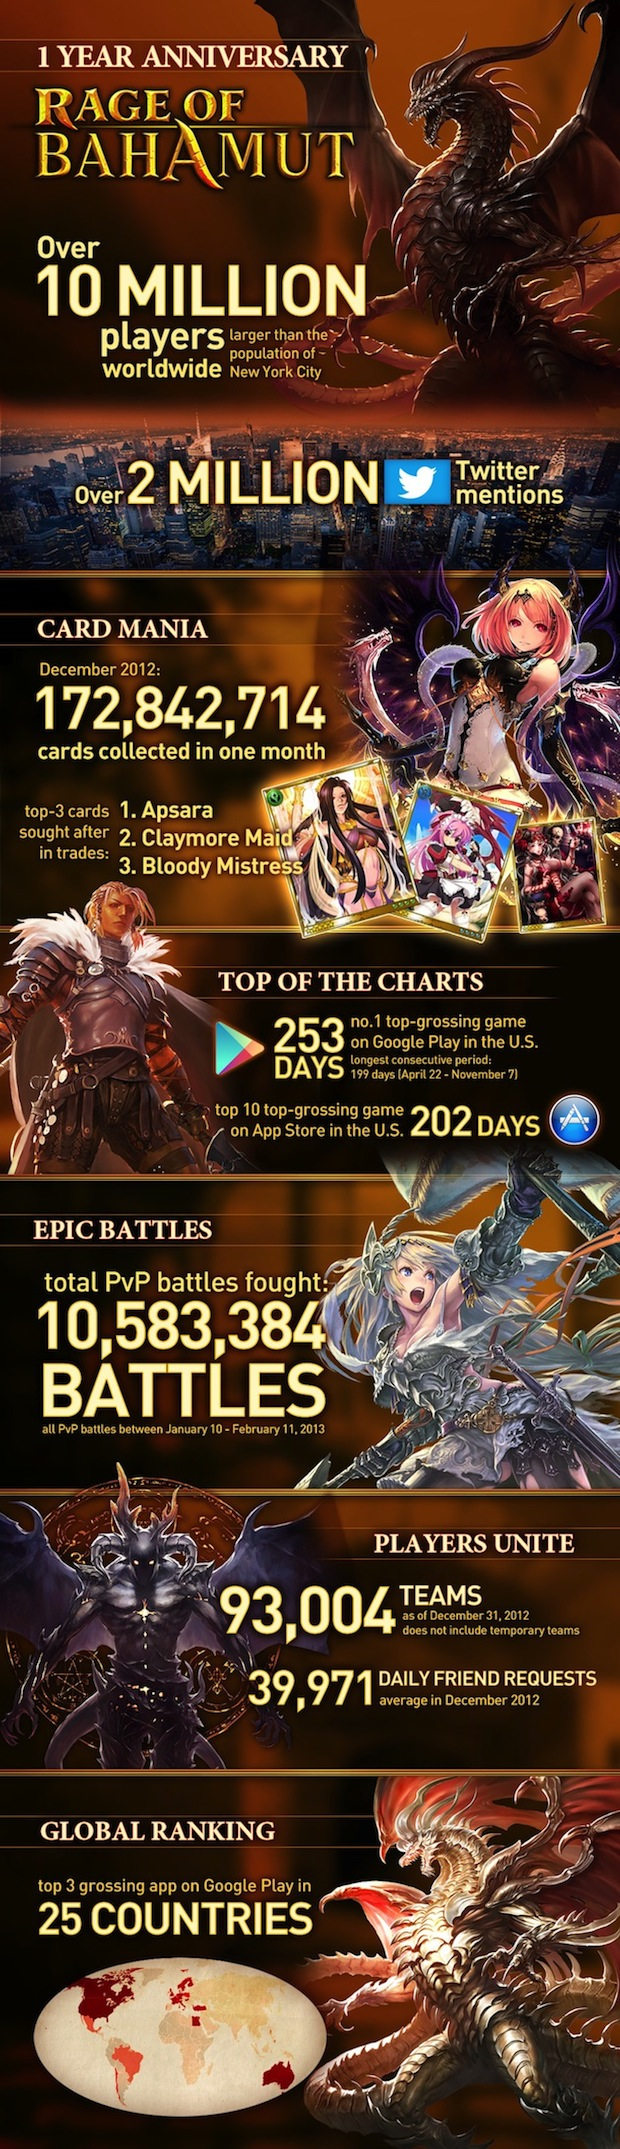 rage of Bahamut infographic